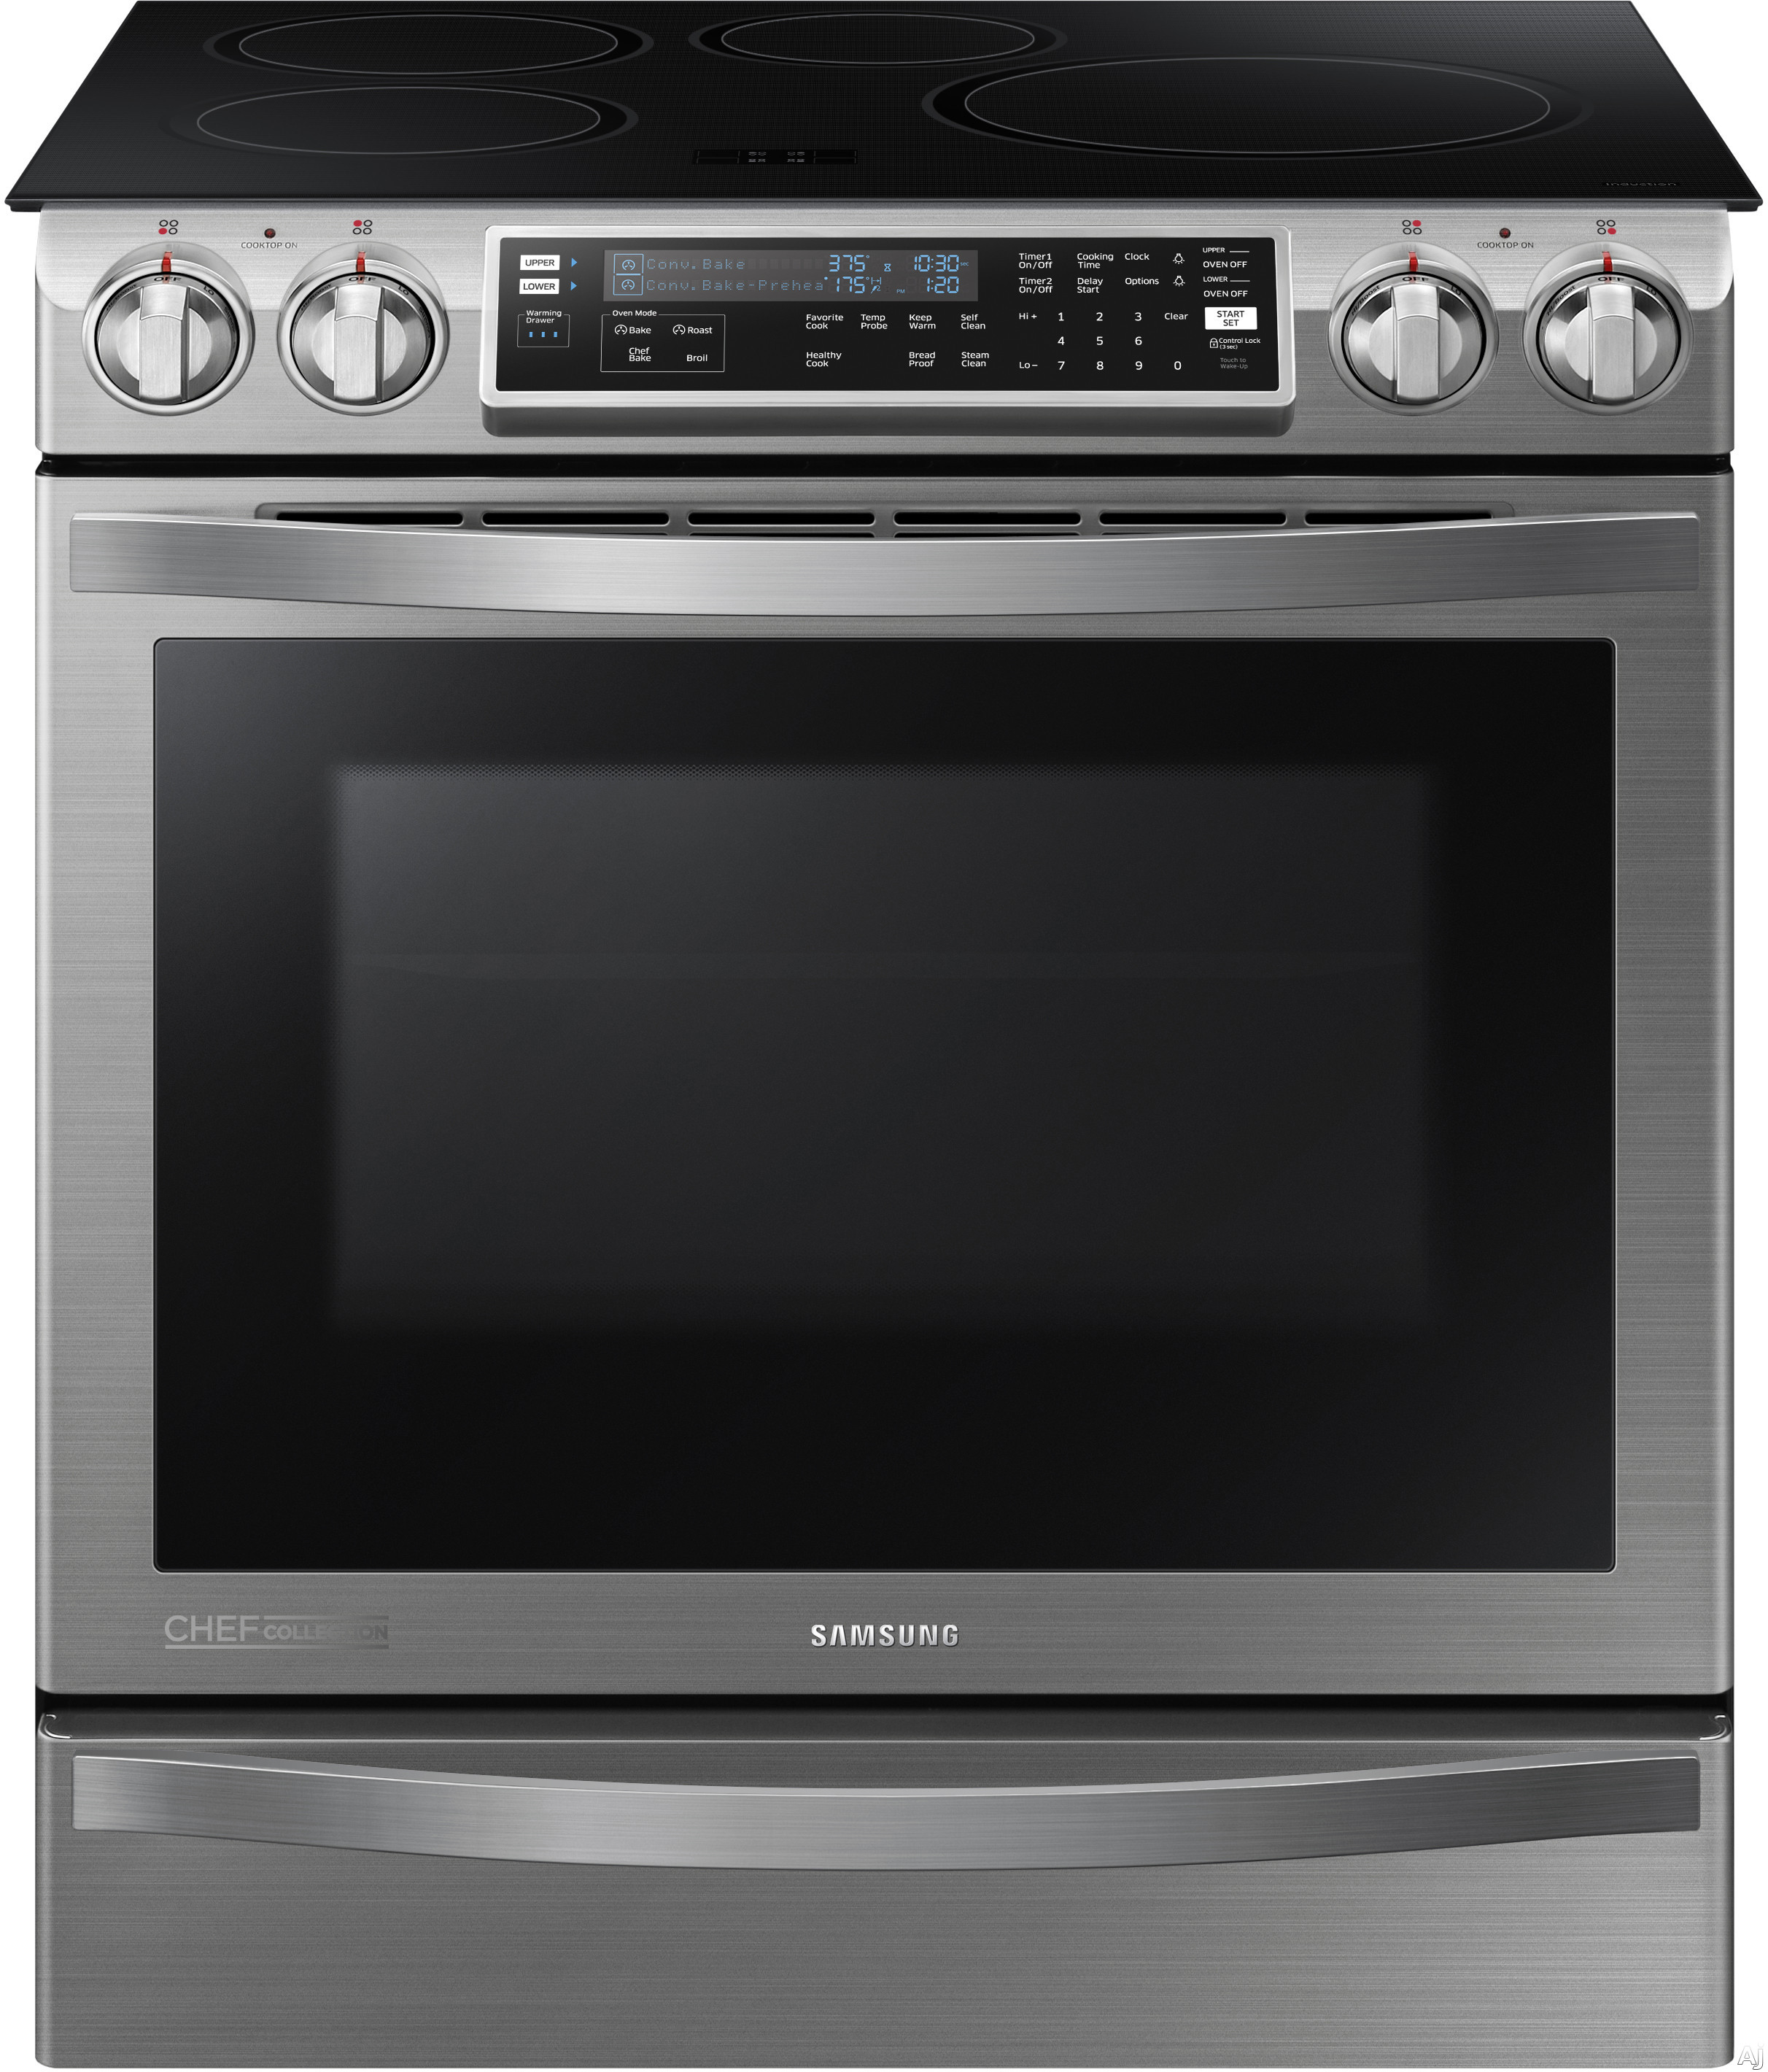 "Samsung Chef Collection NE58H9970WS 30"" Slide-In Induction Range with 4 Burners, 5.8 cu. ft. Convection Oven, Flex Duo Oven Option, LED Virtual Flame Technology and Gliding Oven Rack"